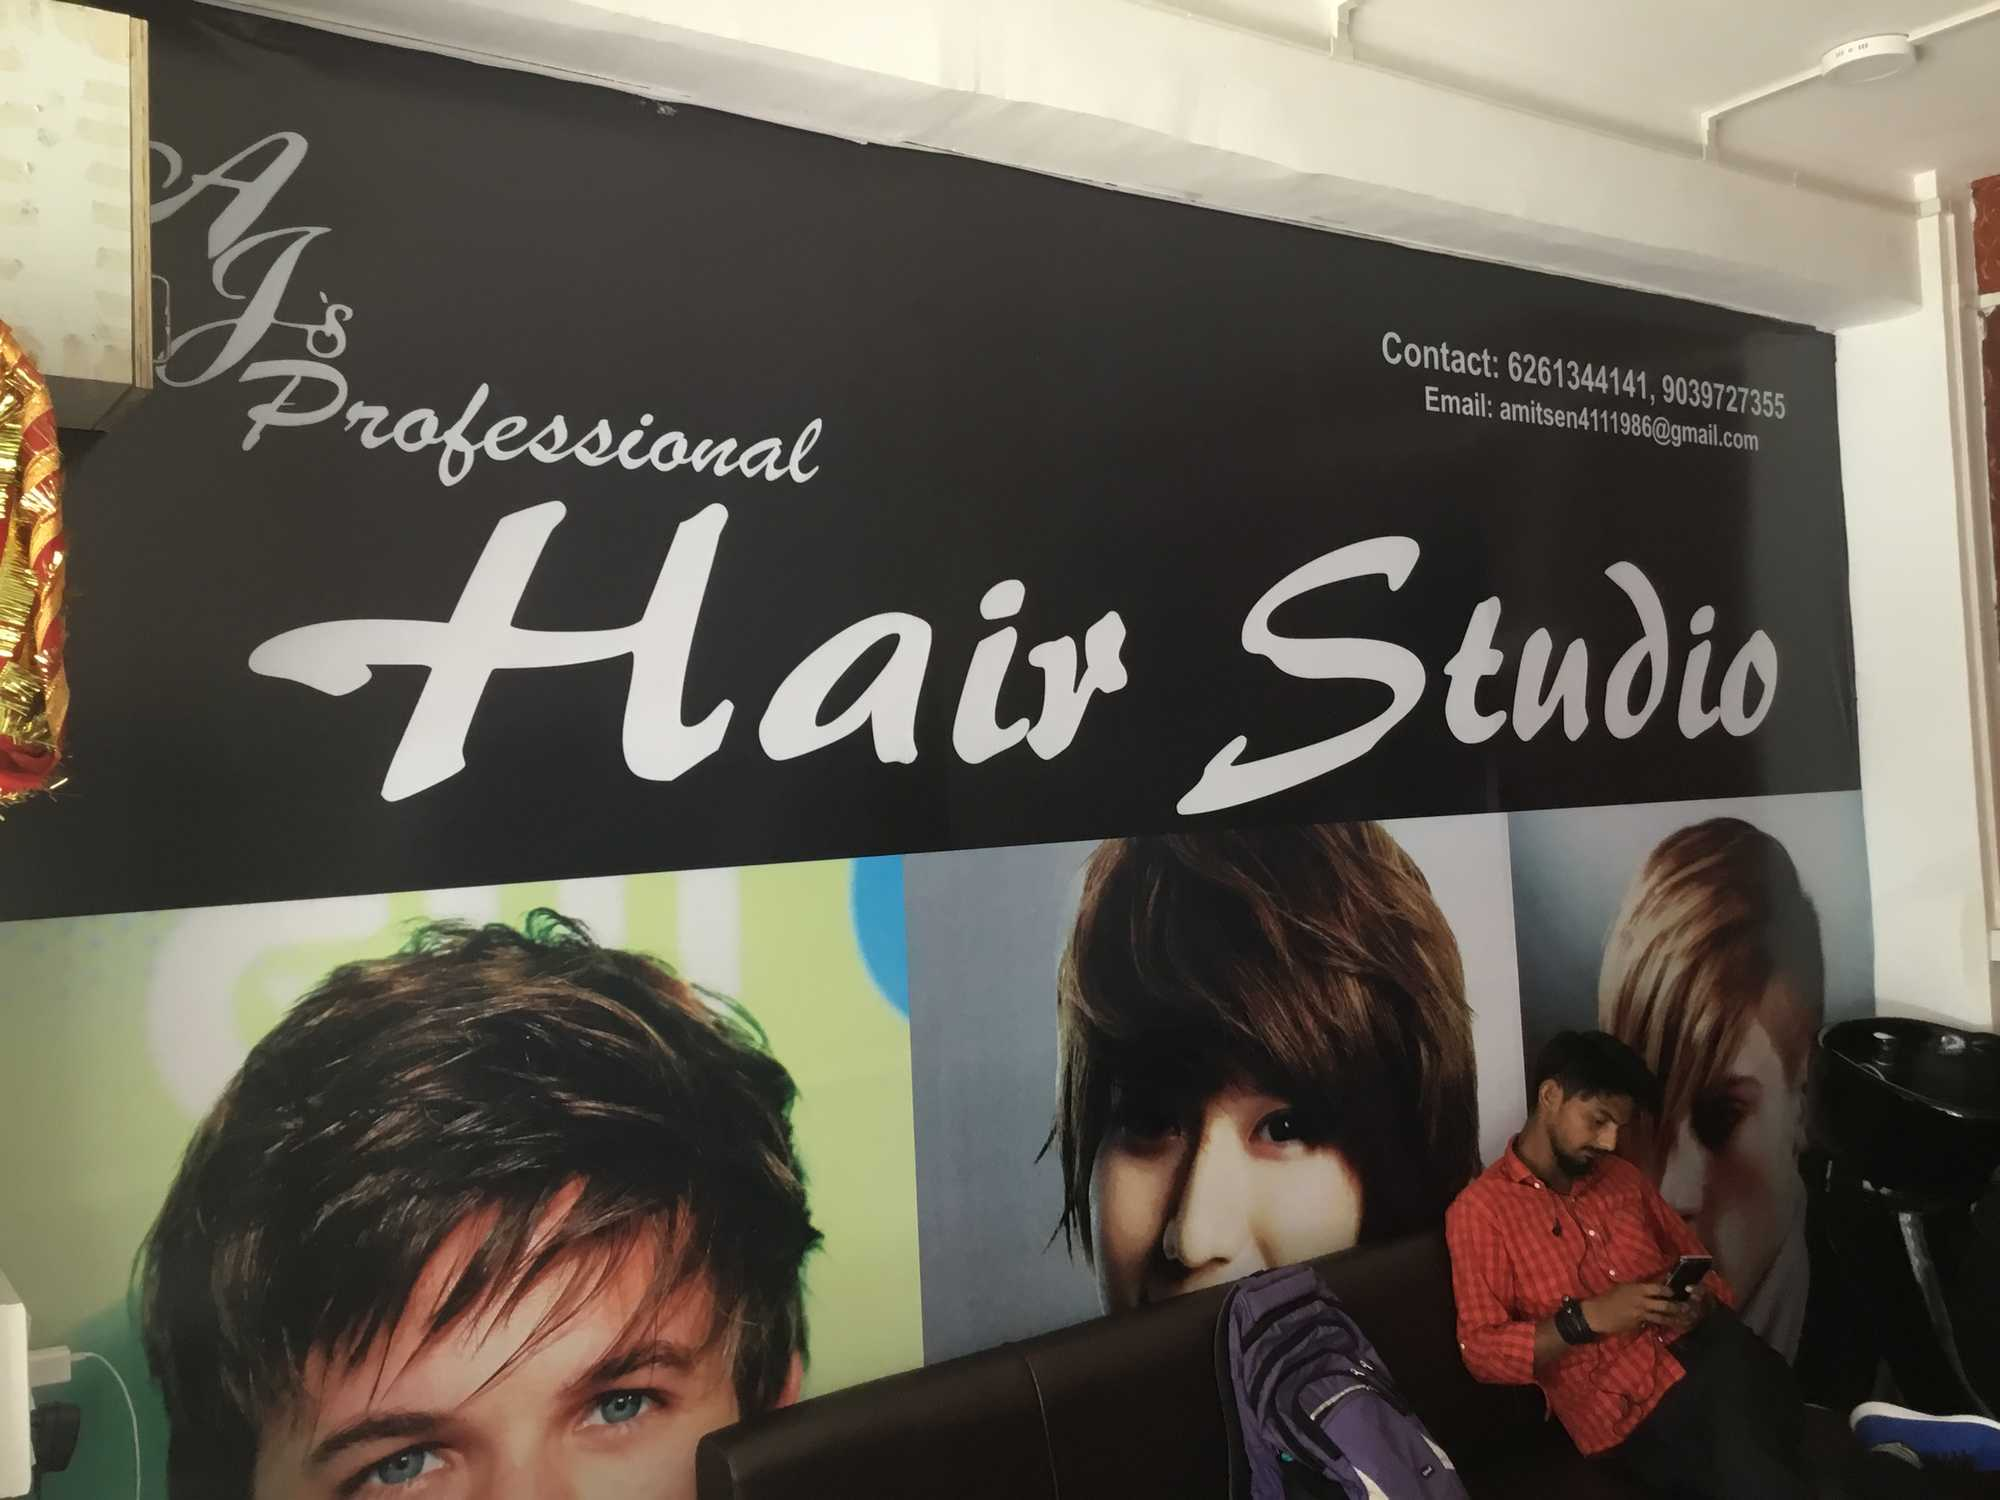 Top 100 Hair Stylists in Bhopal - Best Hair Salons - Justdial